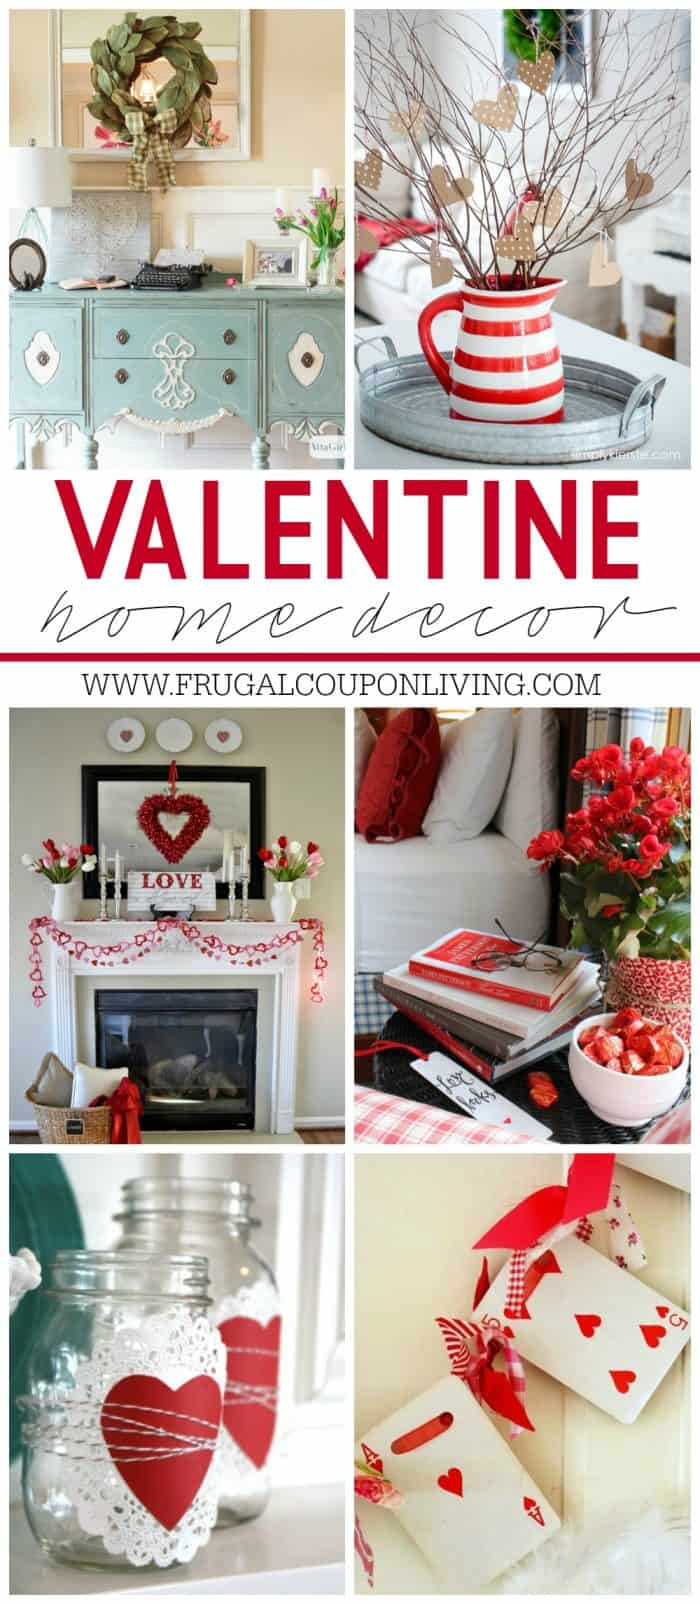 valentine-home-decor-ideas-collage-frugal-coupon-living